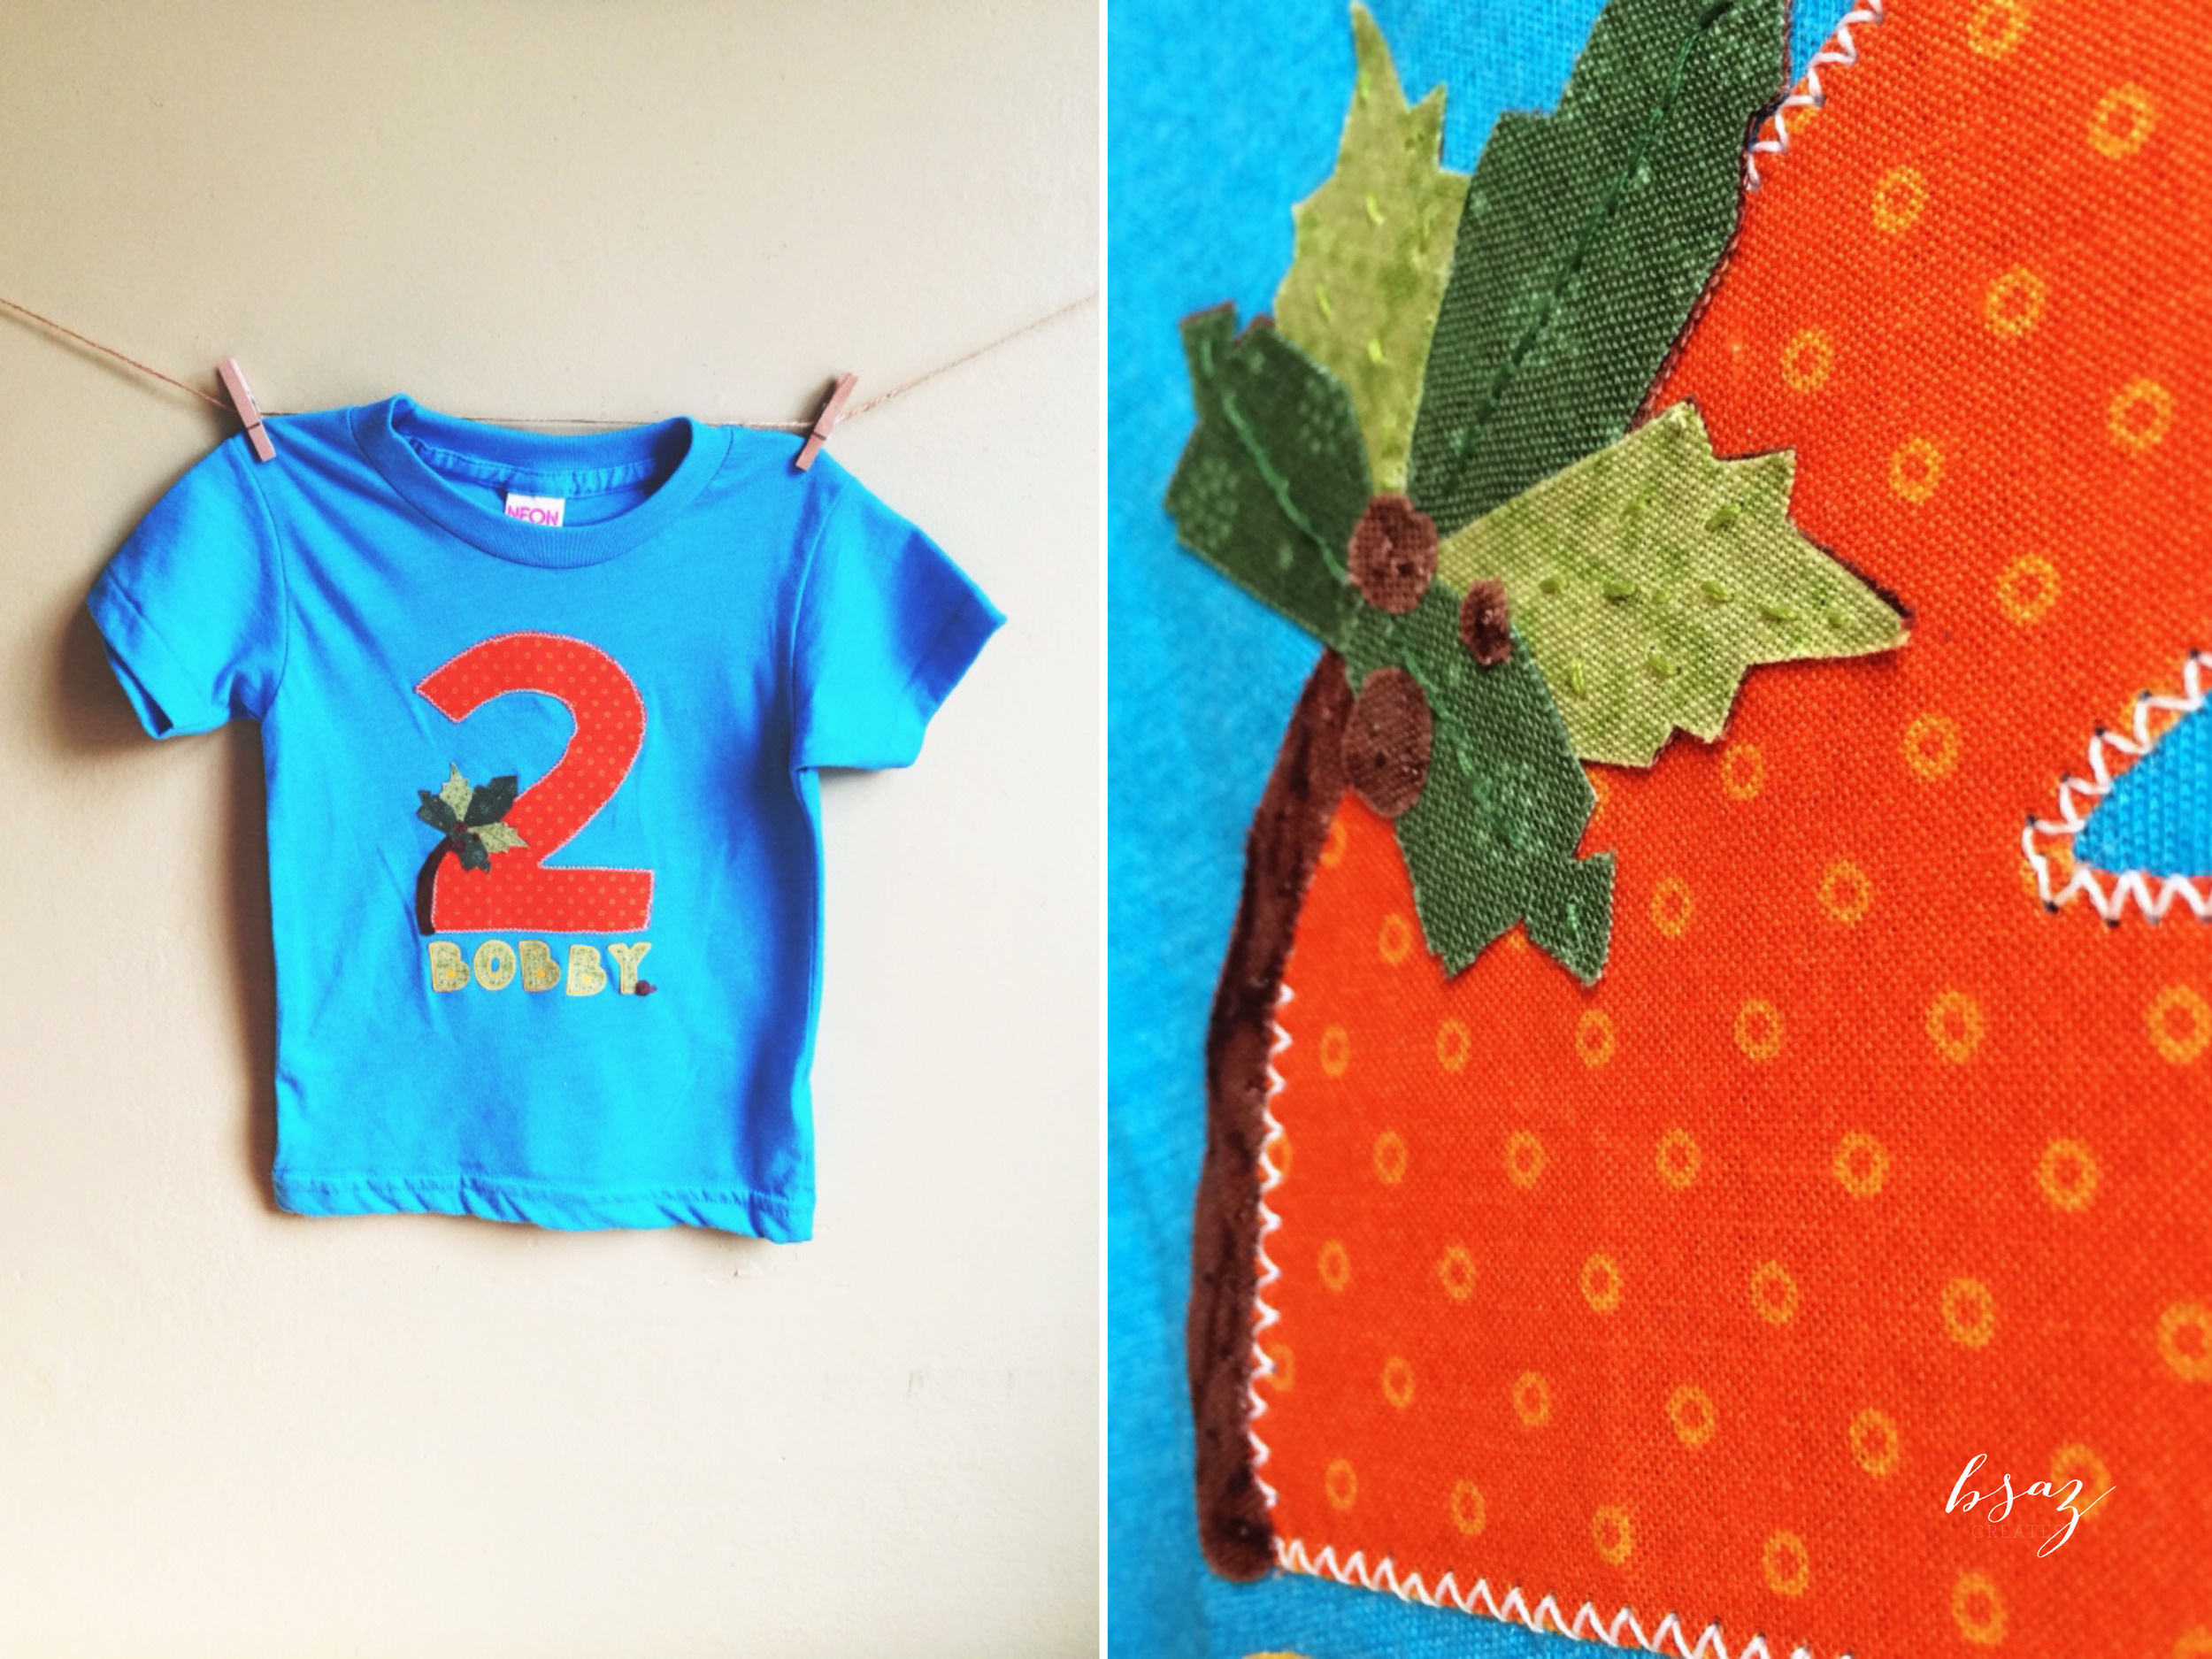 BSAZ CREATES | CHICKA CHICKA BOOM BOOM BIRTHDAY BOY SHIRT